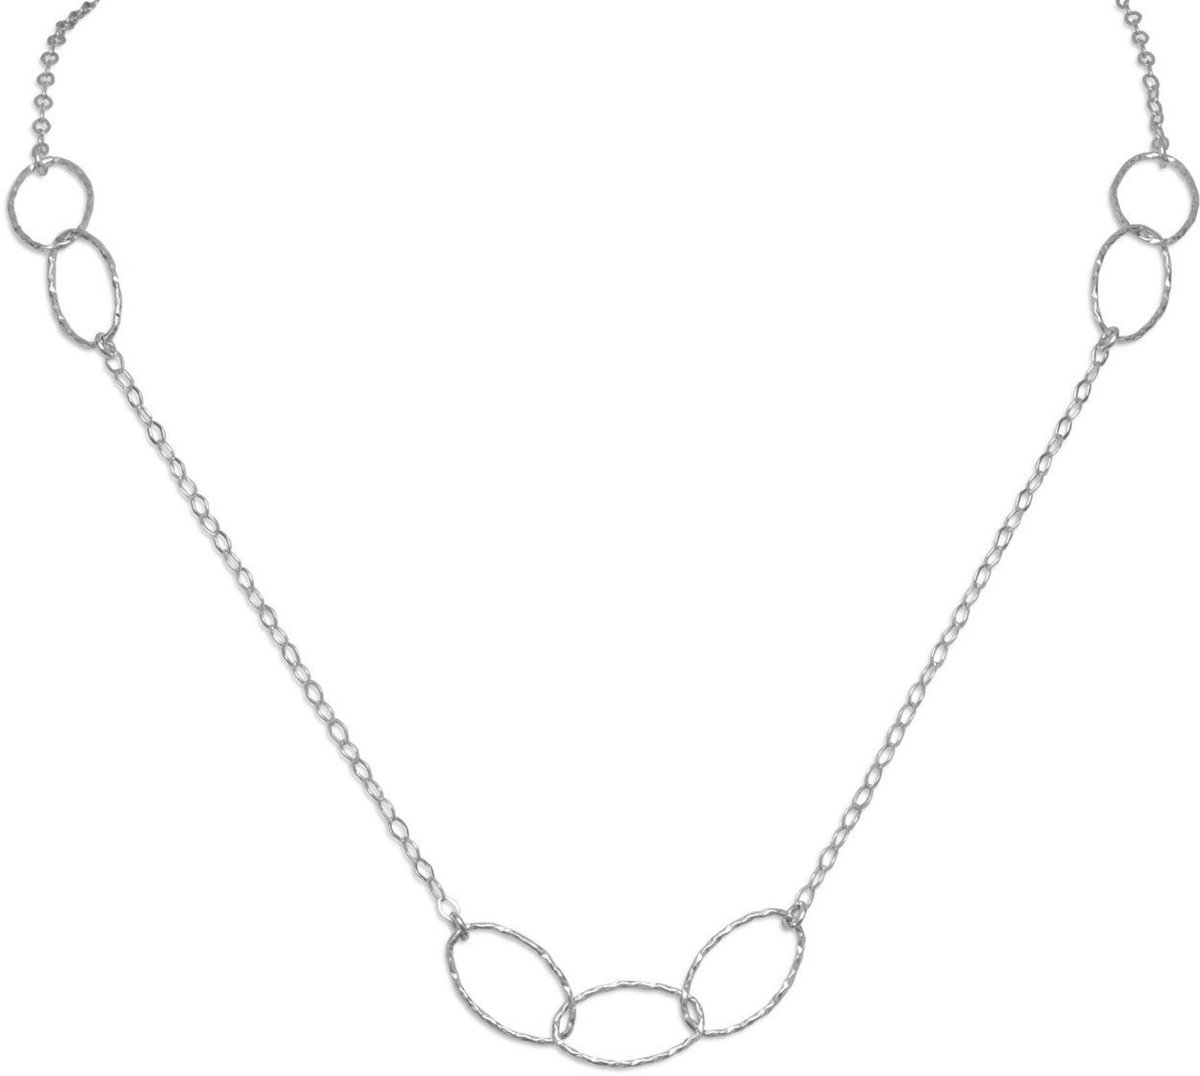 "27.5"" Rhodium Plated Multisize Oval Link Necklace 925 Sterling Silver"